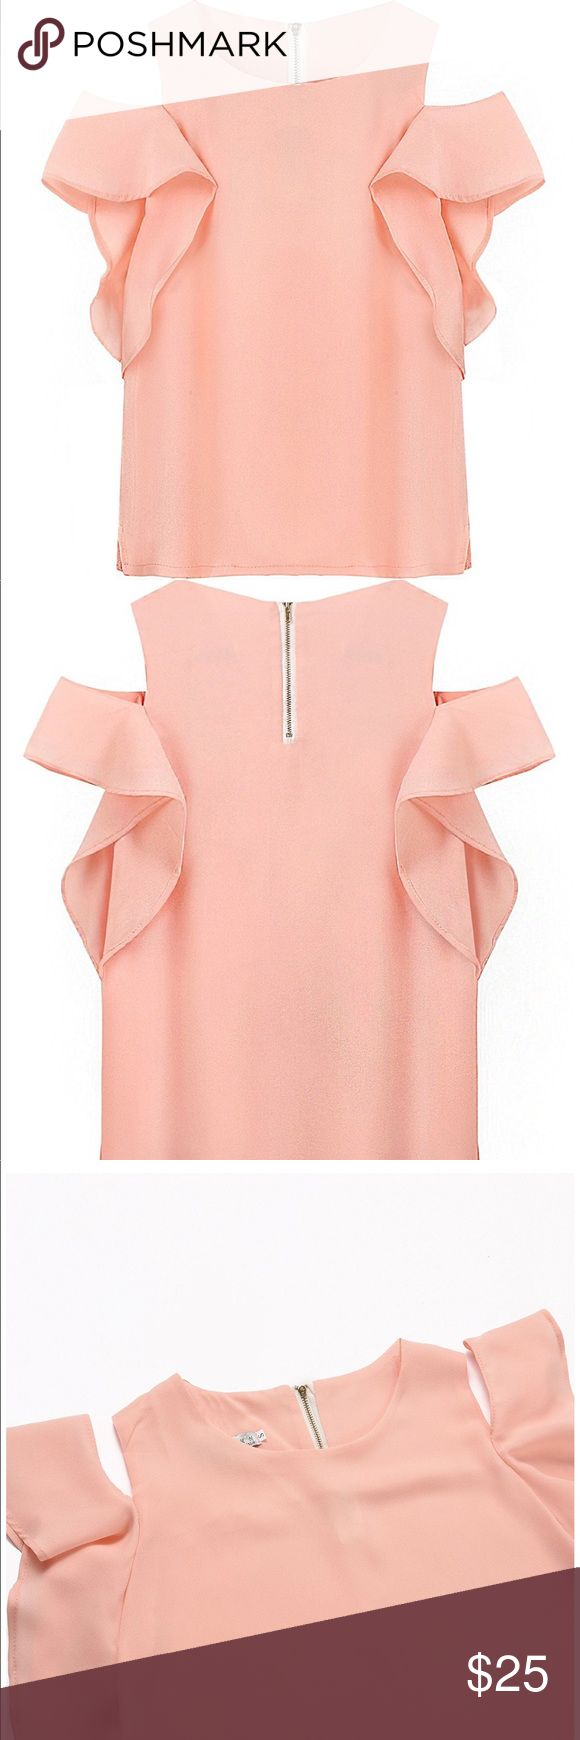 Off the Shoulder Chiffon Blouses Women Fashion New without tag High quality chiffon. Hand-washing, machine washable, dry clean, do not bleach. Sexy off shoulder design.. Tops Blouses